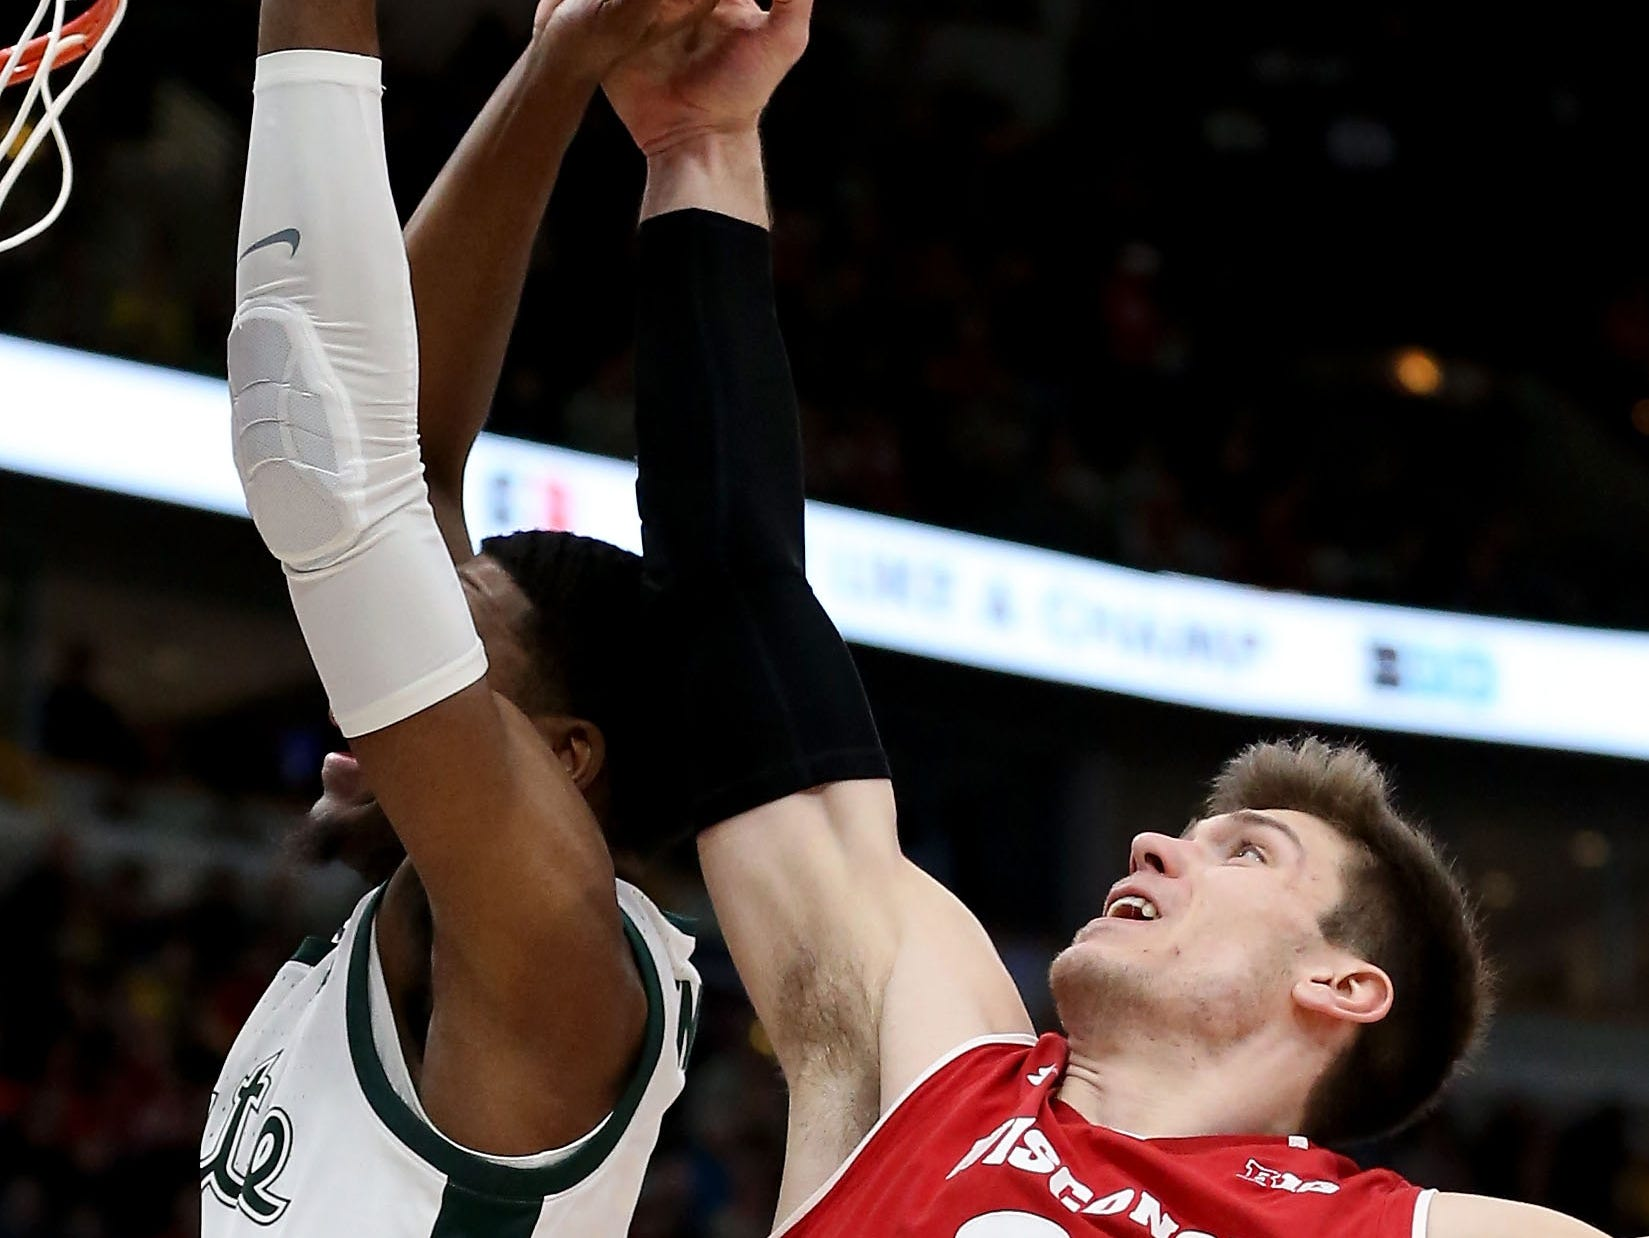 Ethan Happ #22 of the Wisconsin Badgers blocks a shot attempt by Aaron Henry #11 of the Michigan State Spartans in the first half during the semifinals of the Big Ten Basketball Tournament at the United Center on March 16, 2019 in Chicago, Illinois.